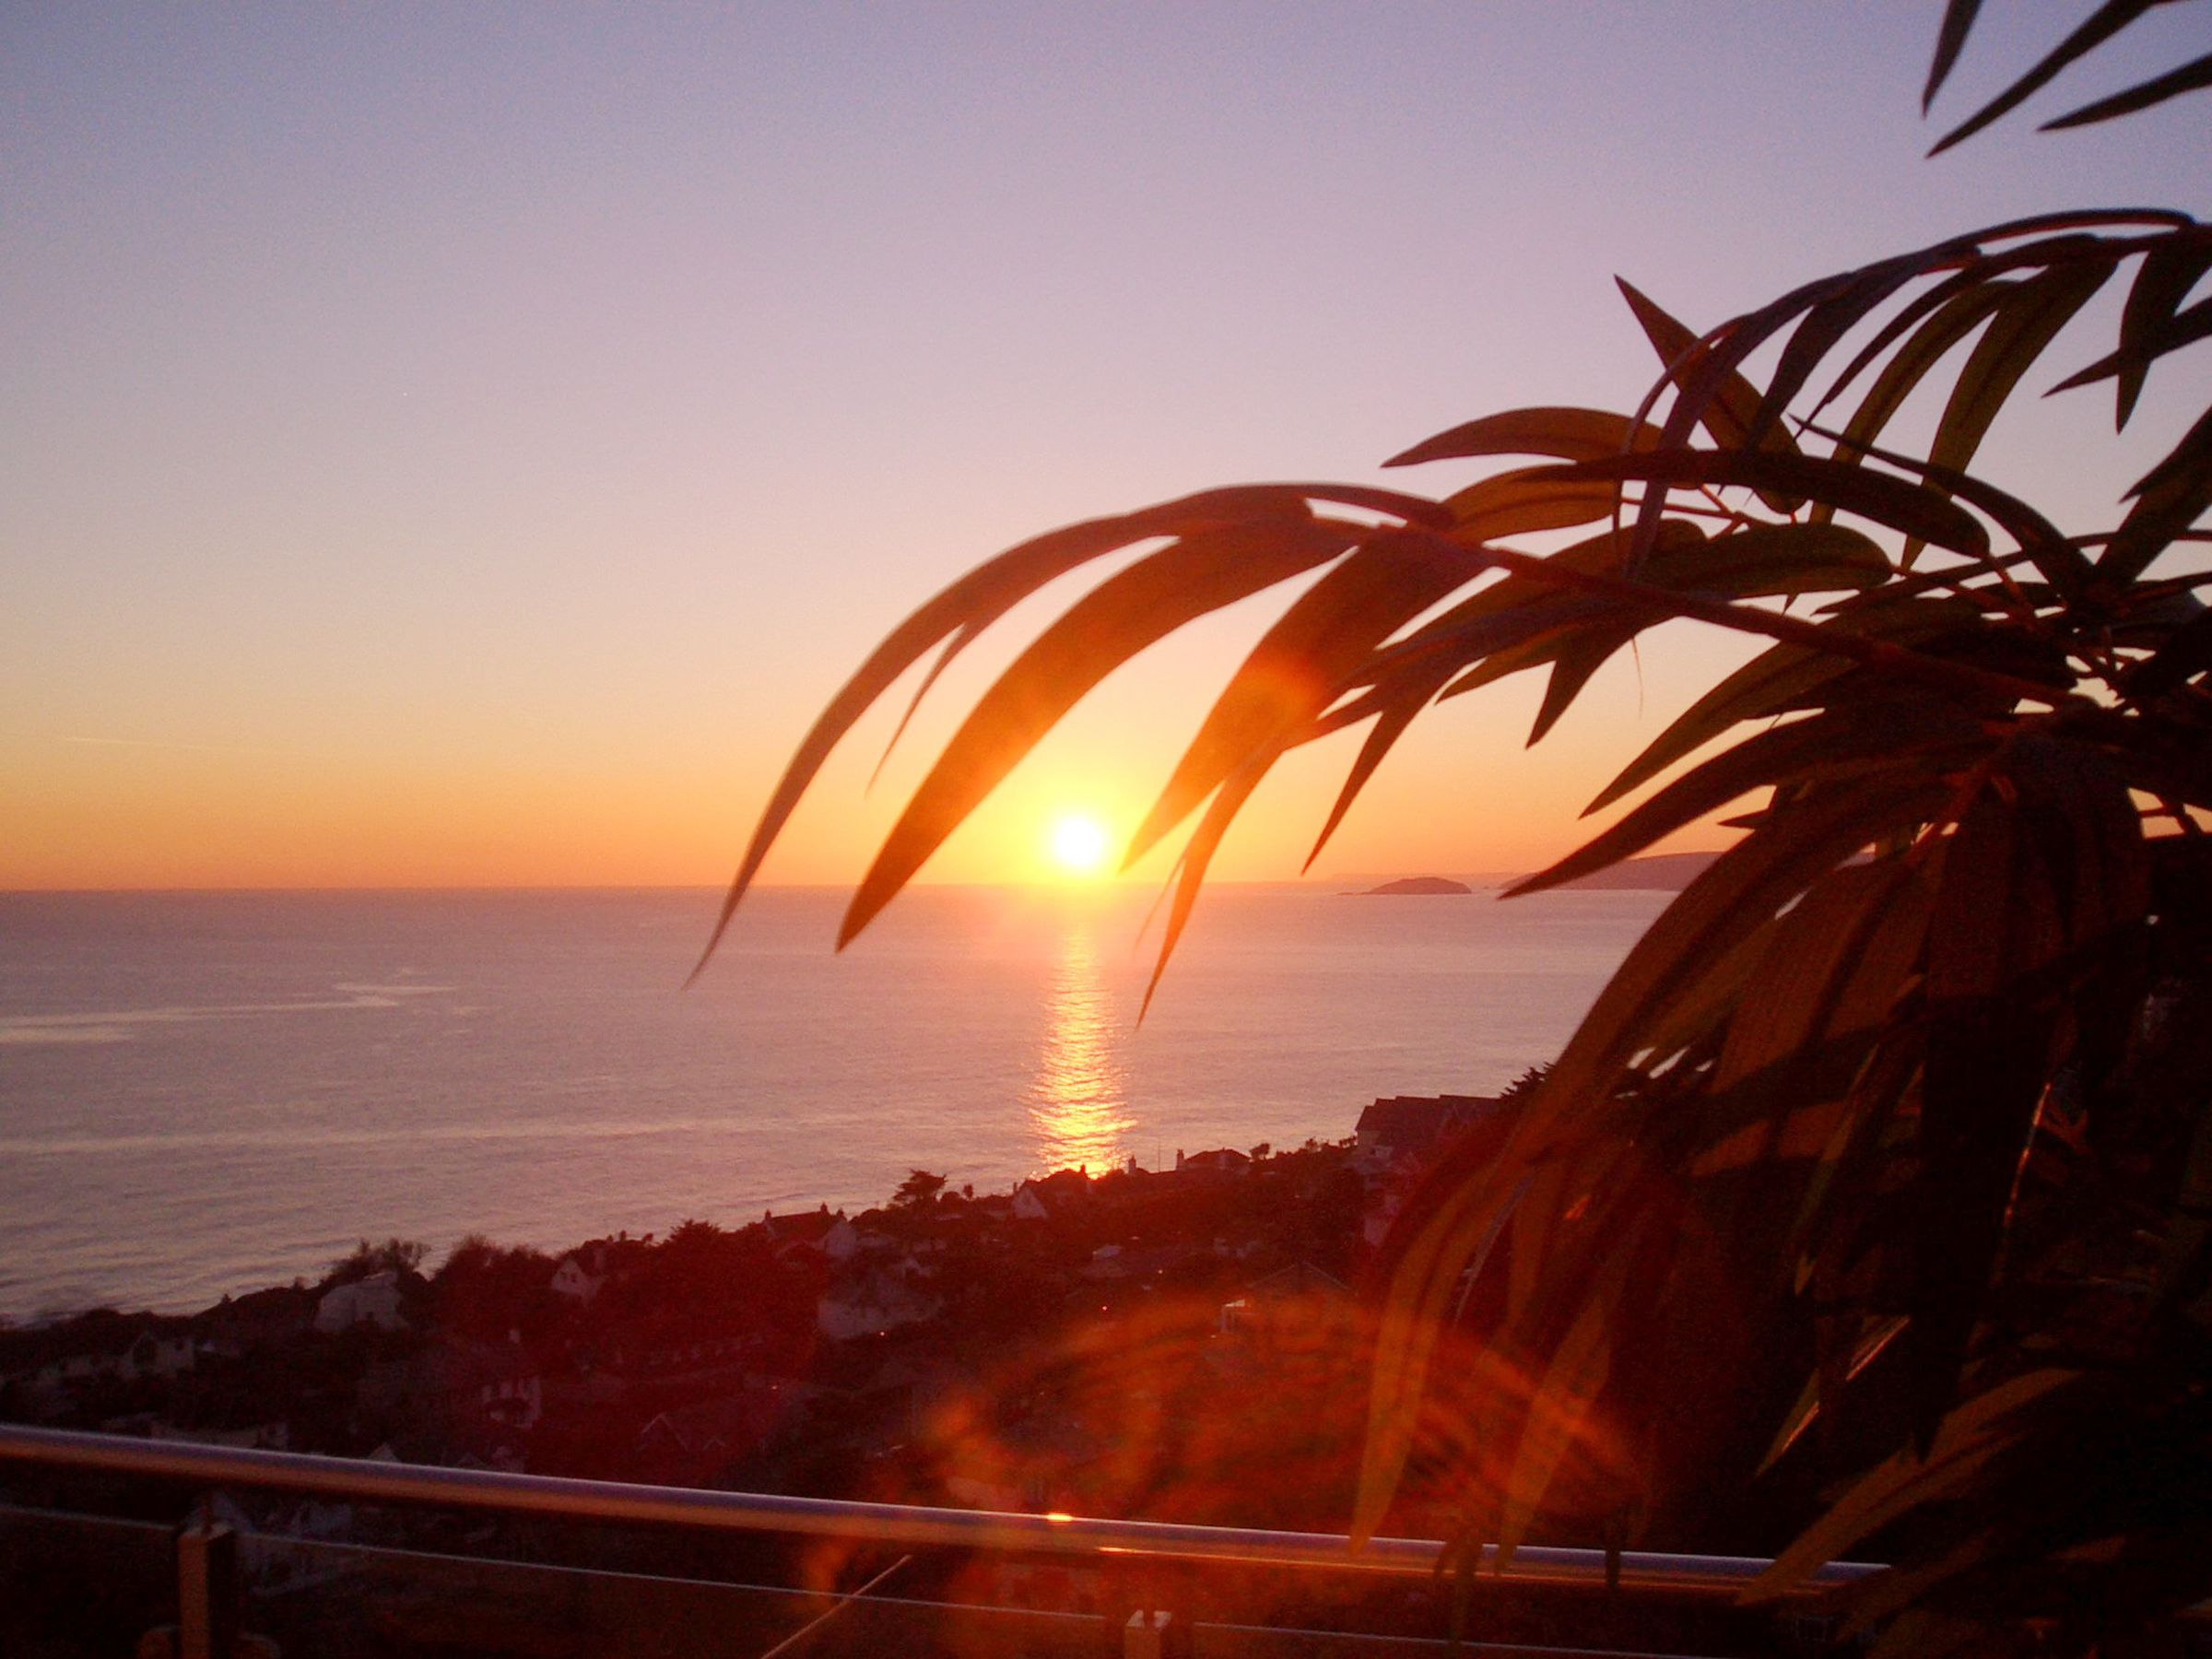 A winter sunset viewed from the balcony overlooking the bay